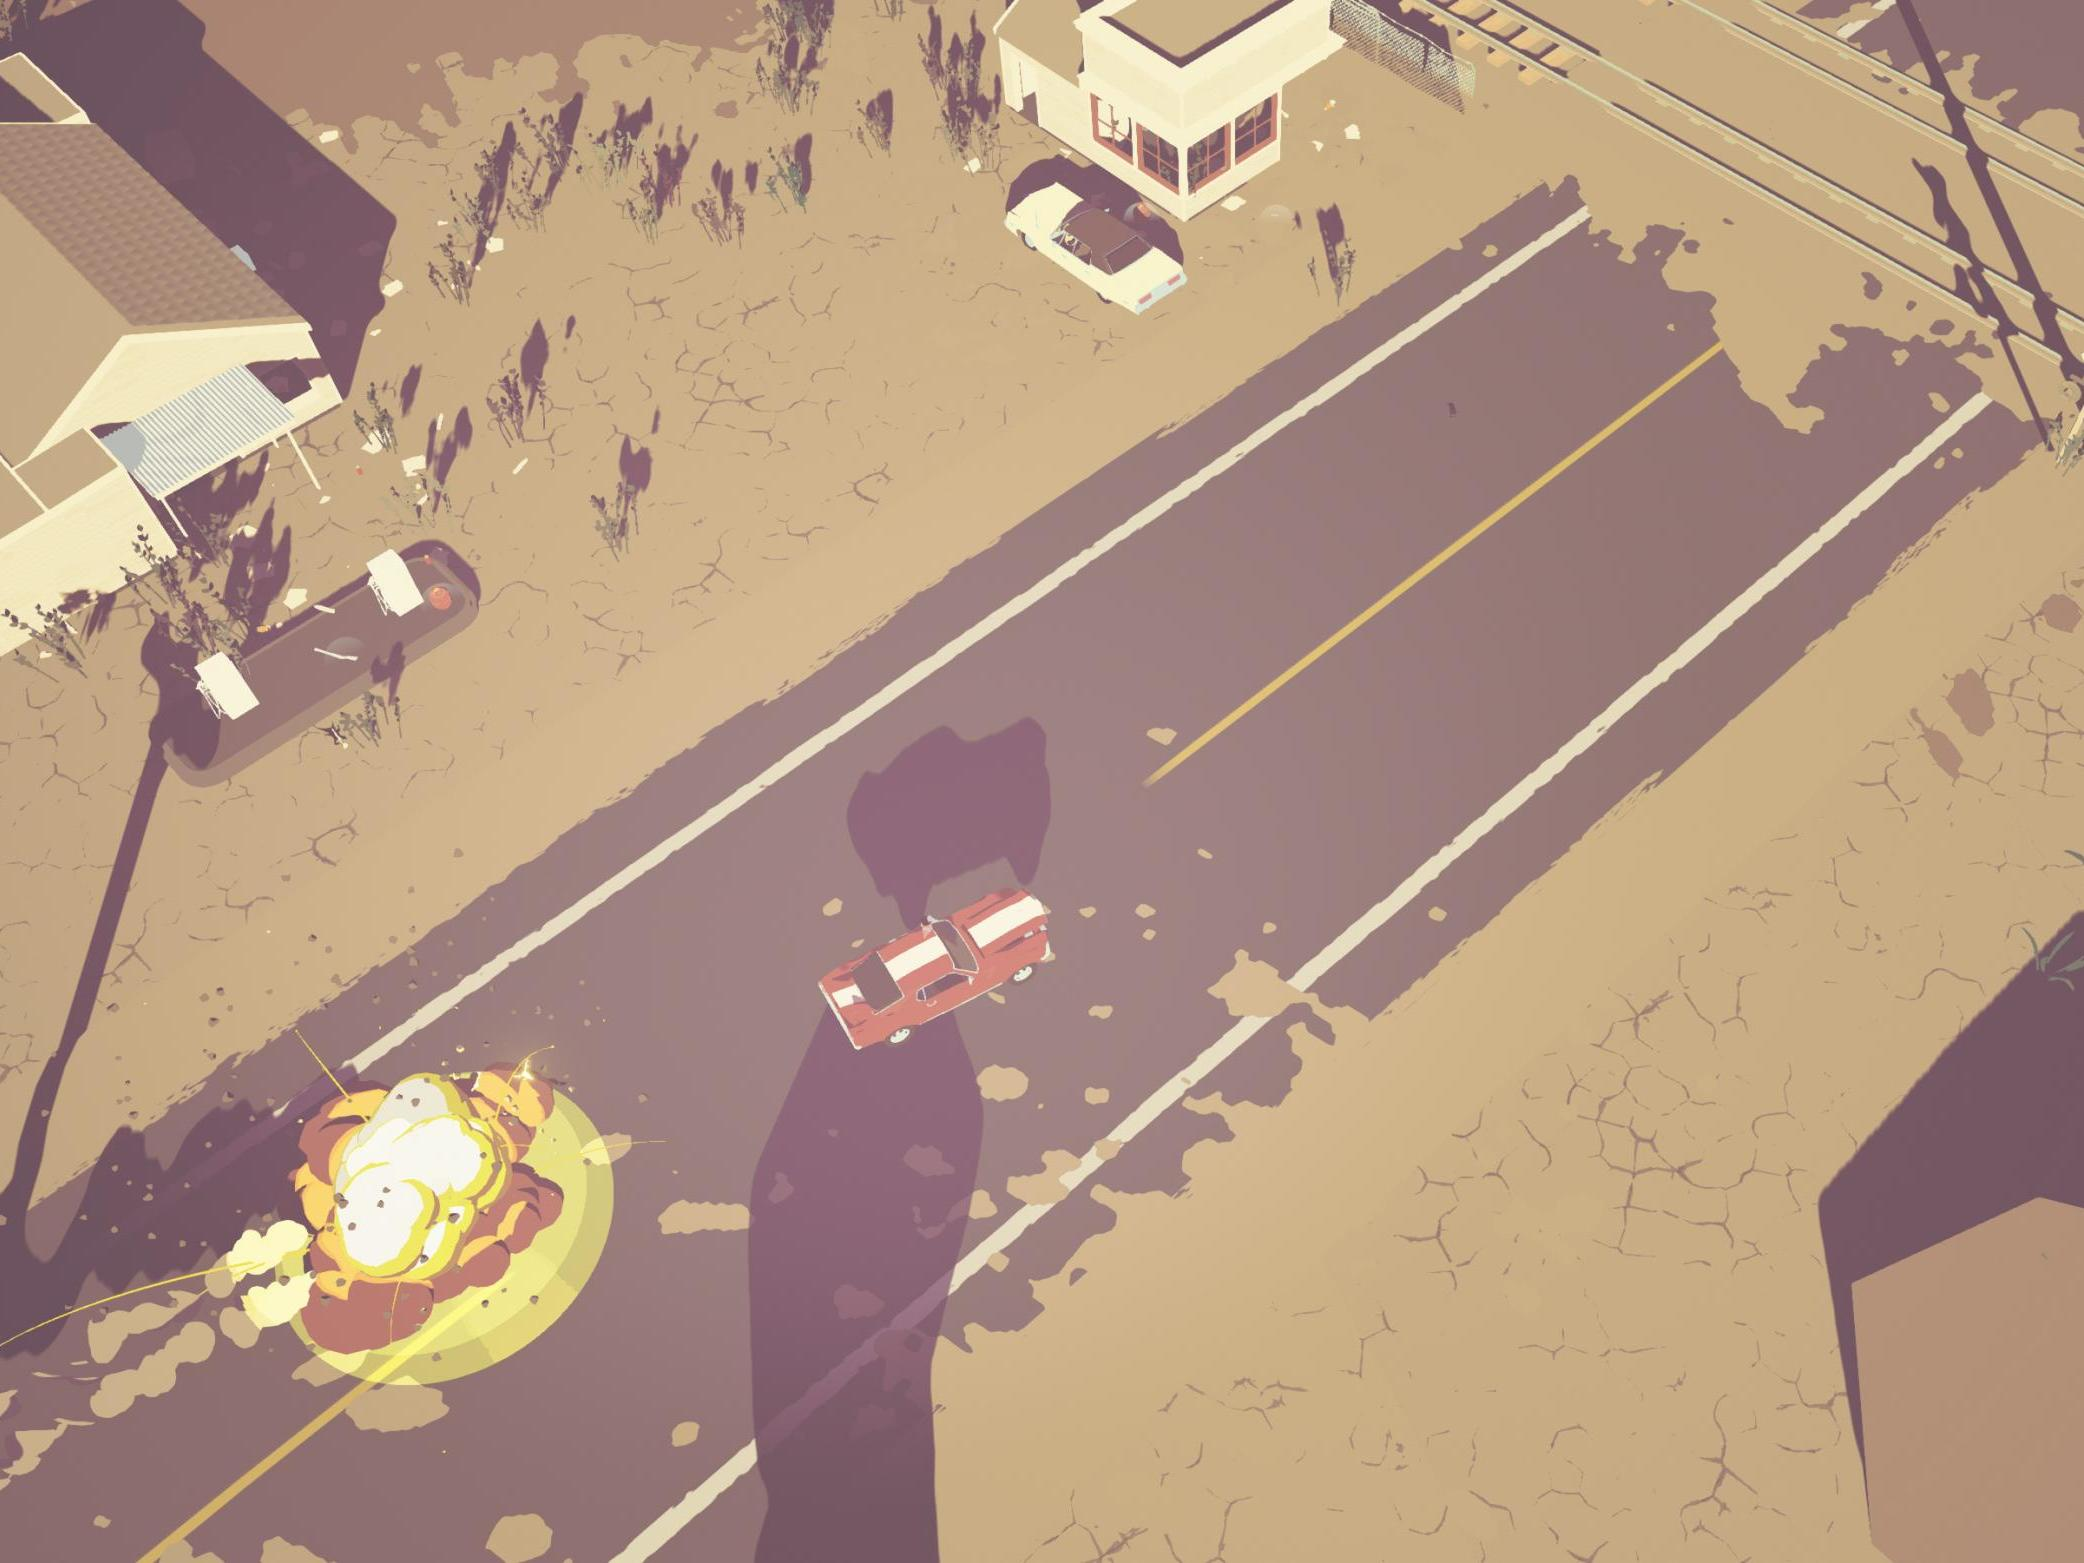 'Grand Theft Auto meets Lovecraft' comes to Xbox and PC